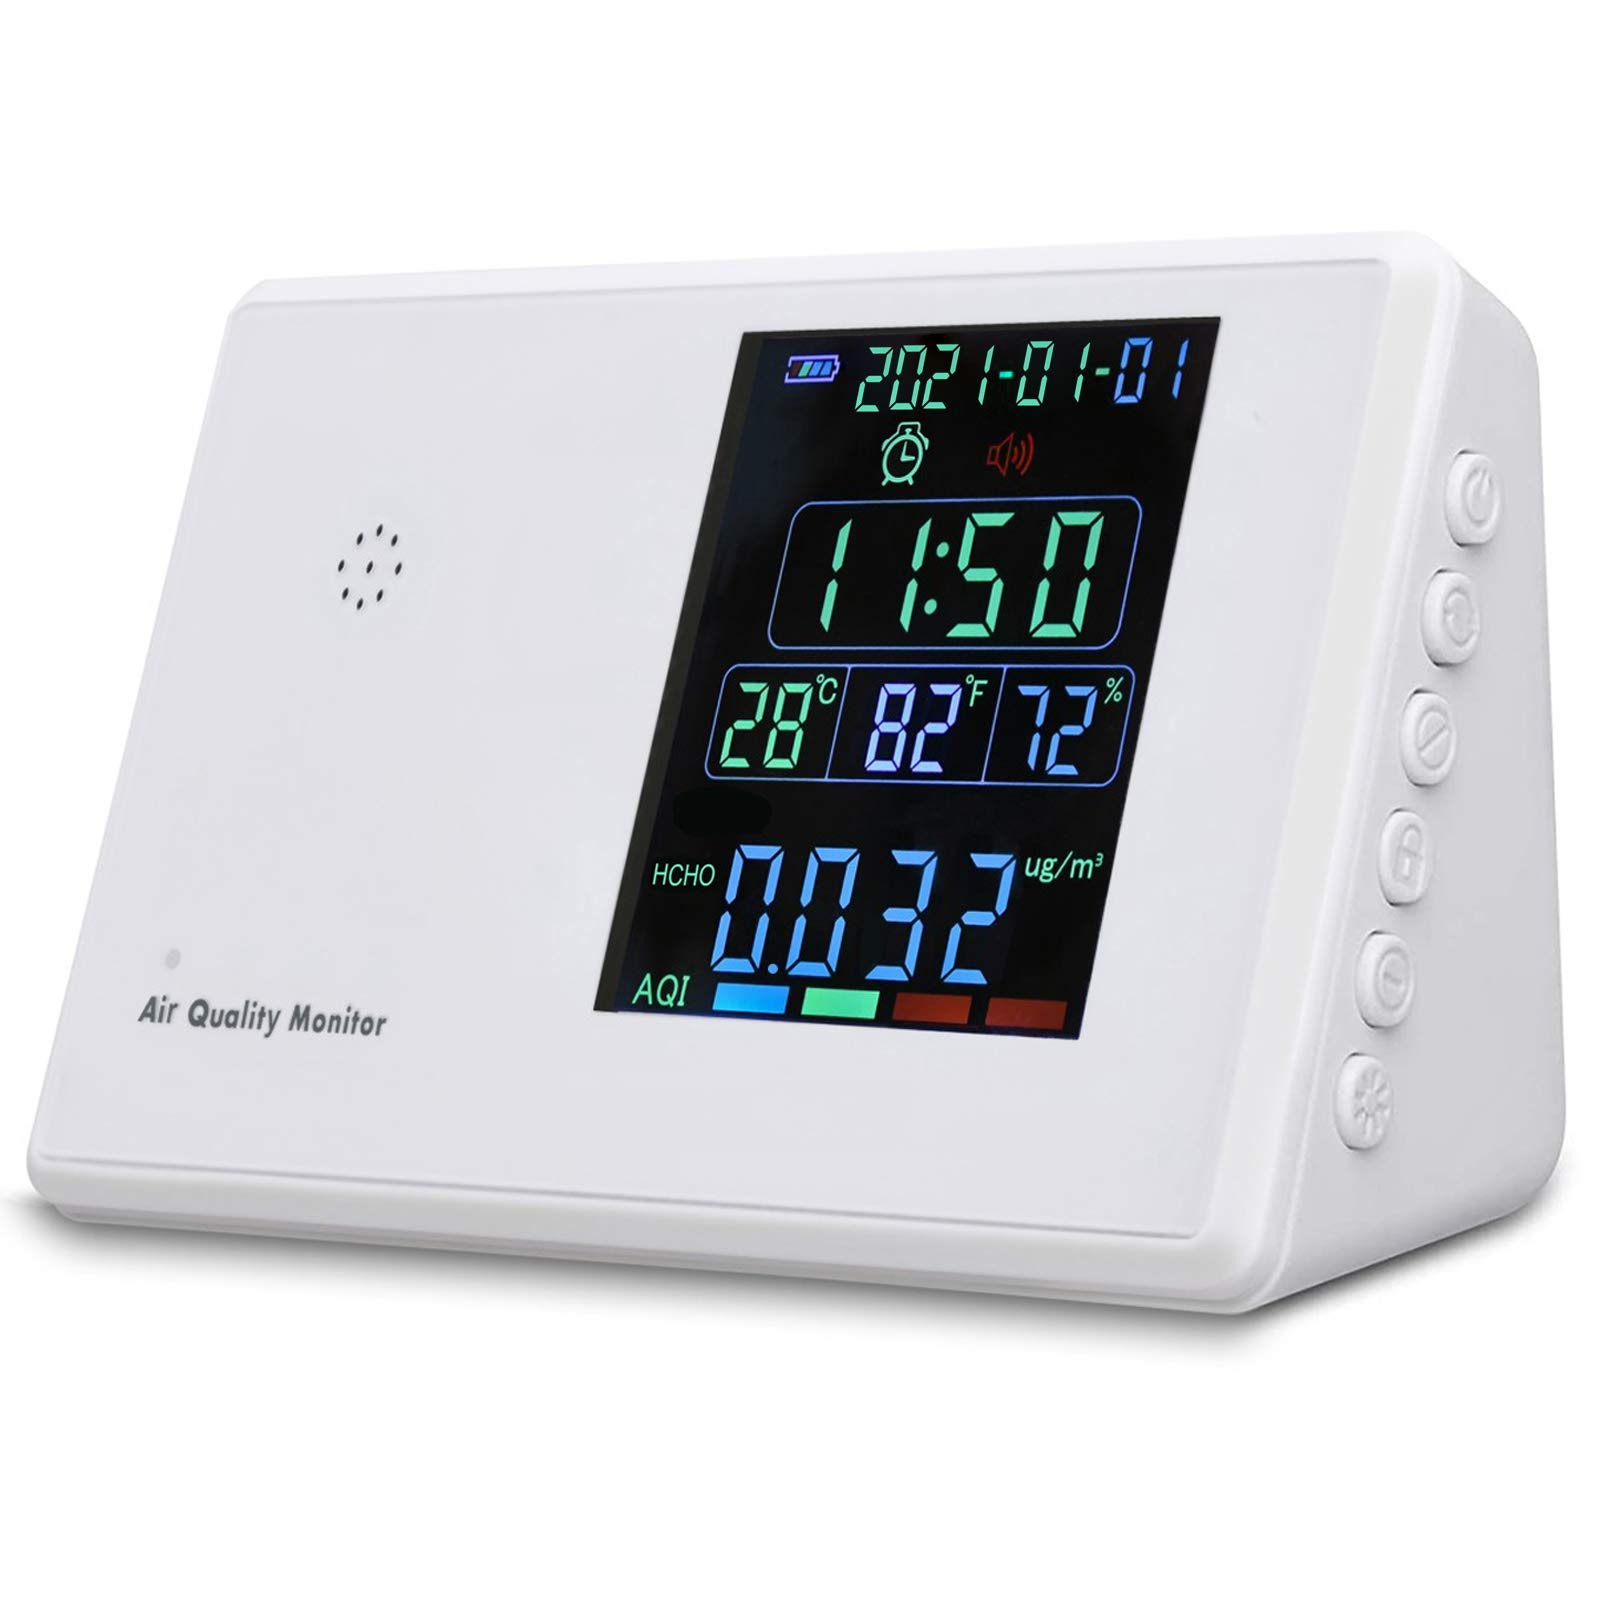 Air Quality Monitor, Formaldehyde (HCHO), Harmful Gas TVOC, Carbon Dioxide CO2, particulate Matter PM2.5/PM10, Real-time Monitoring of Indoor air Quality,2021 Latest Design